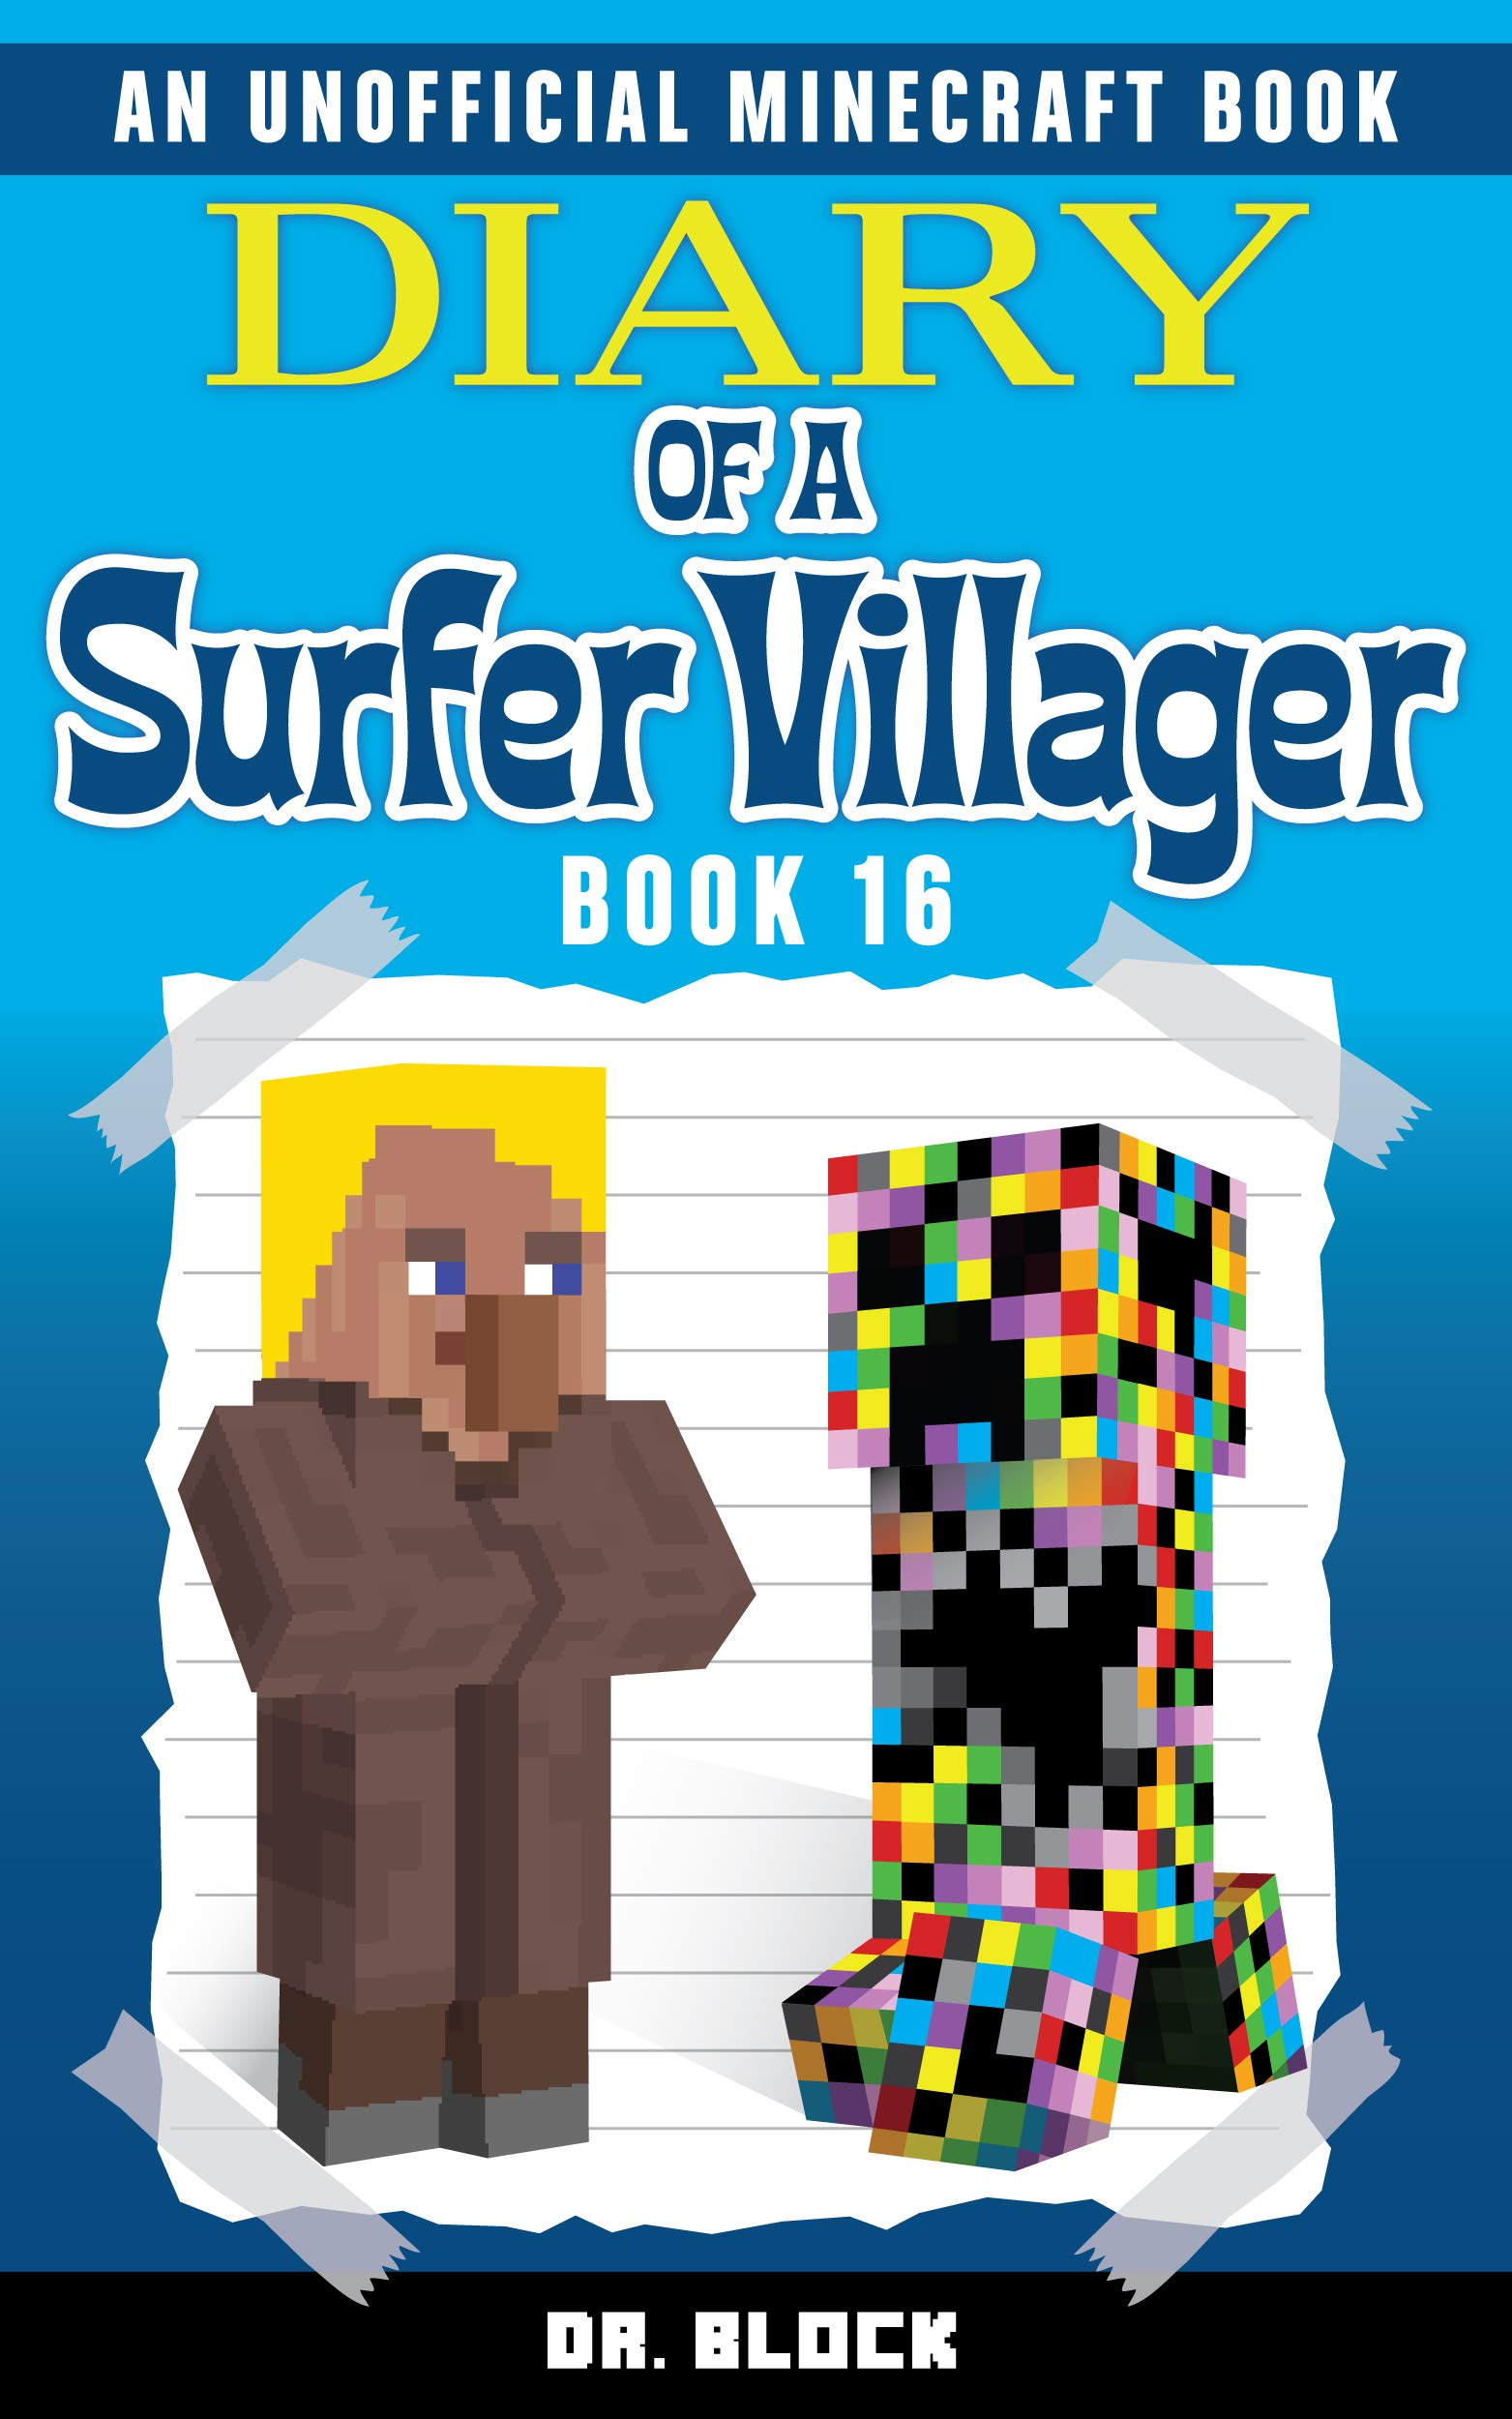 Diary Of A Surfer Villager  Book 16   An Unofficial Minecraft Book For Kids   English Edition